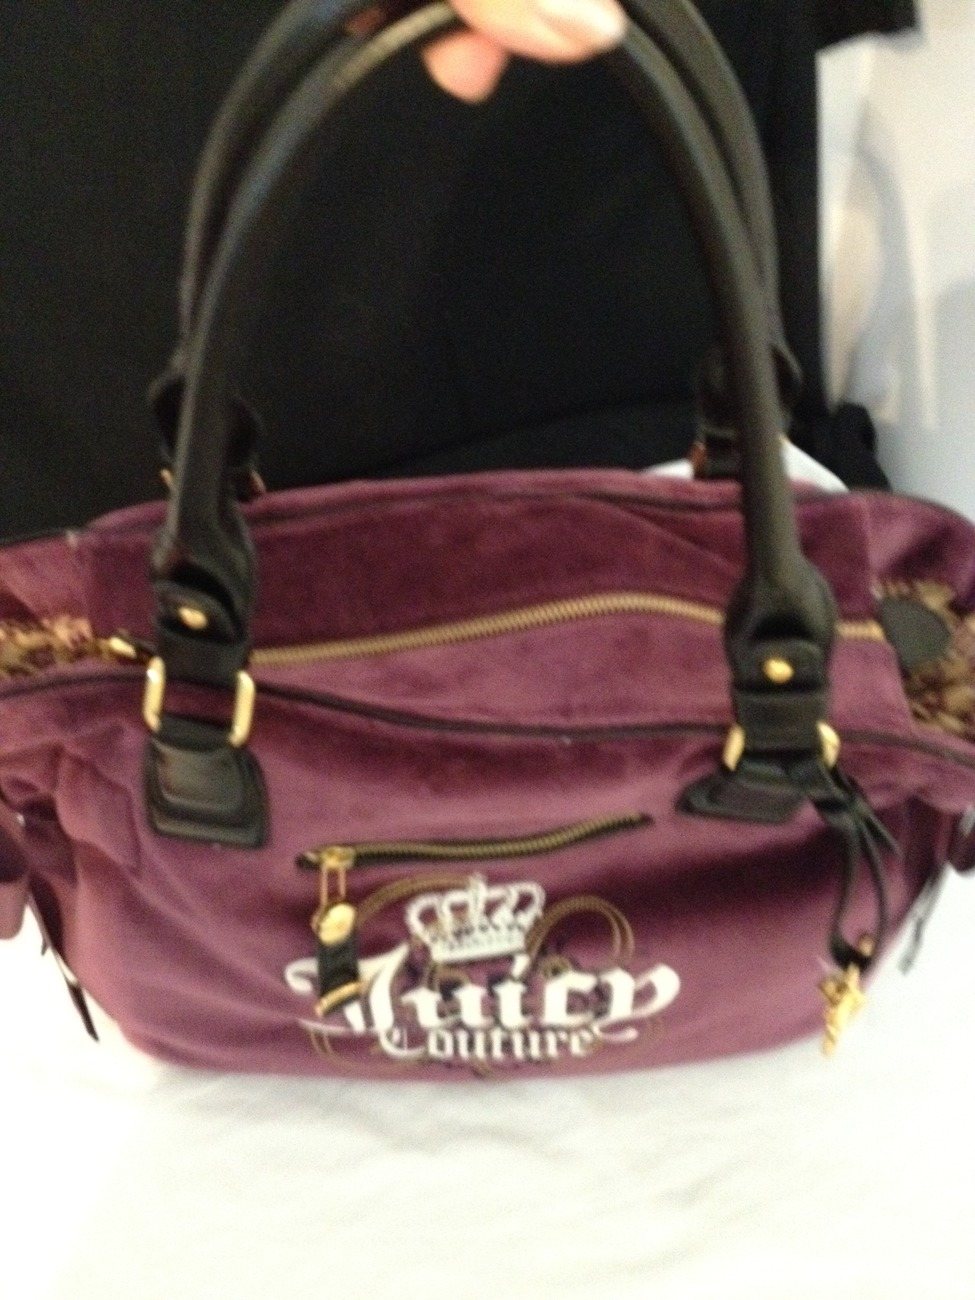 Juicy Couture Purple/Plum Velour Handbag with Golden Heart Charm - New with Tag